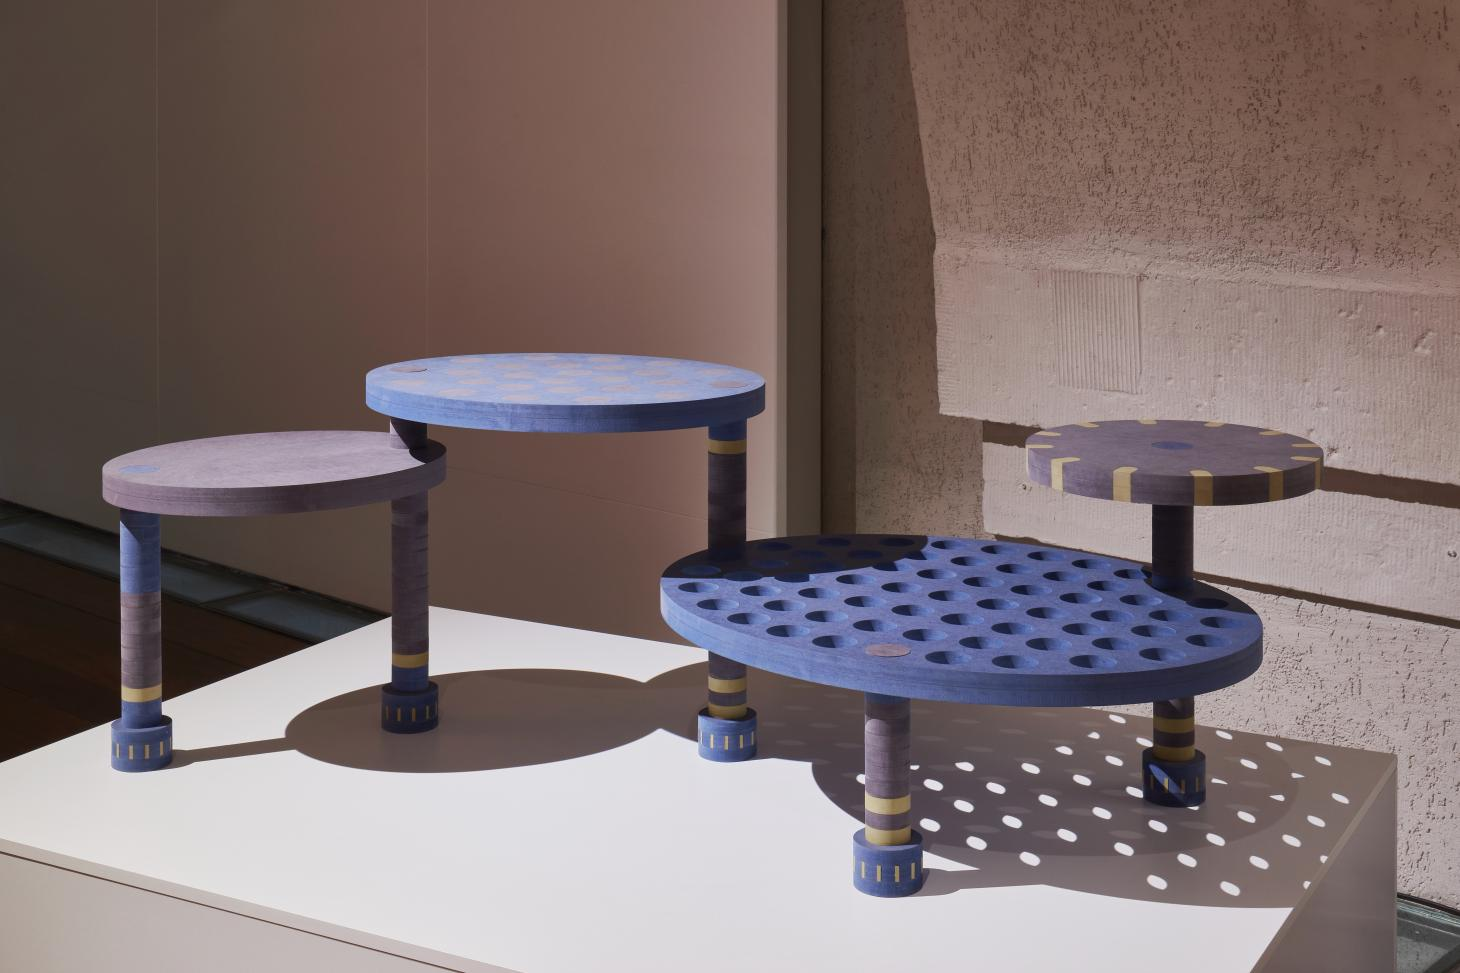 Tables installation made of wood from Finsa, part of Designers in the Middle exhibition at London Design Biennale